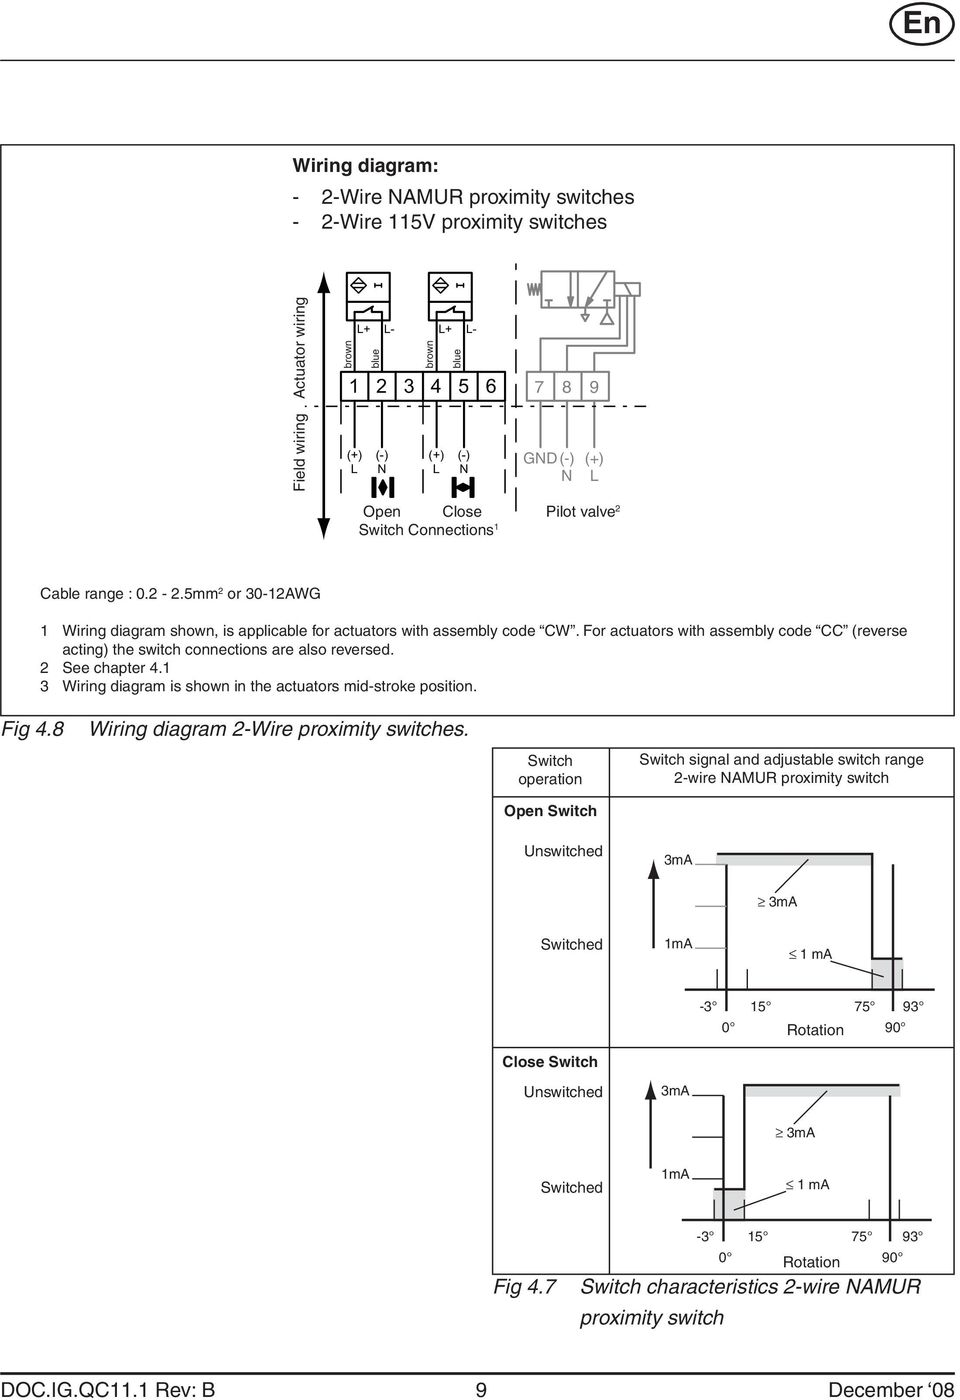 medium resolution of for actuators with assembly code cc reverse acting the switch connections are also reversed